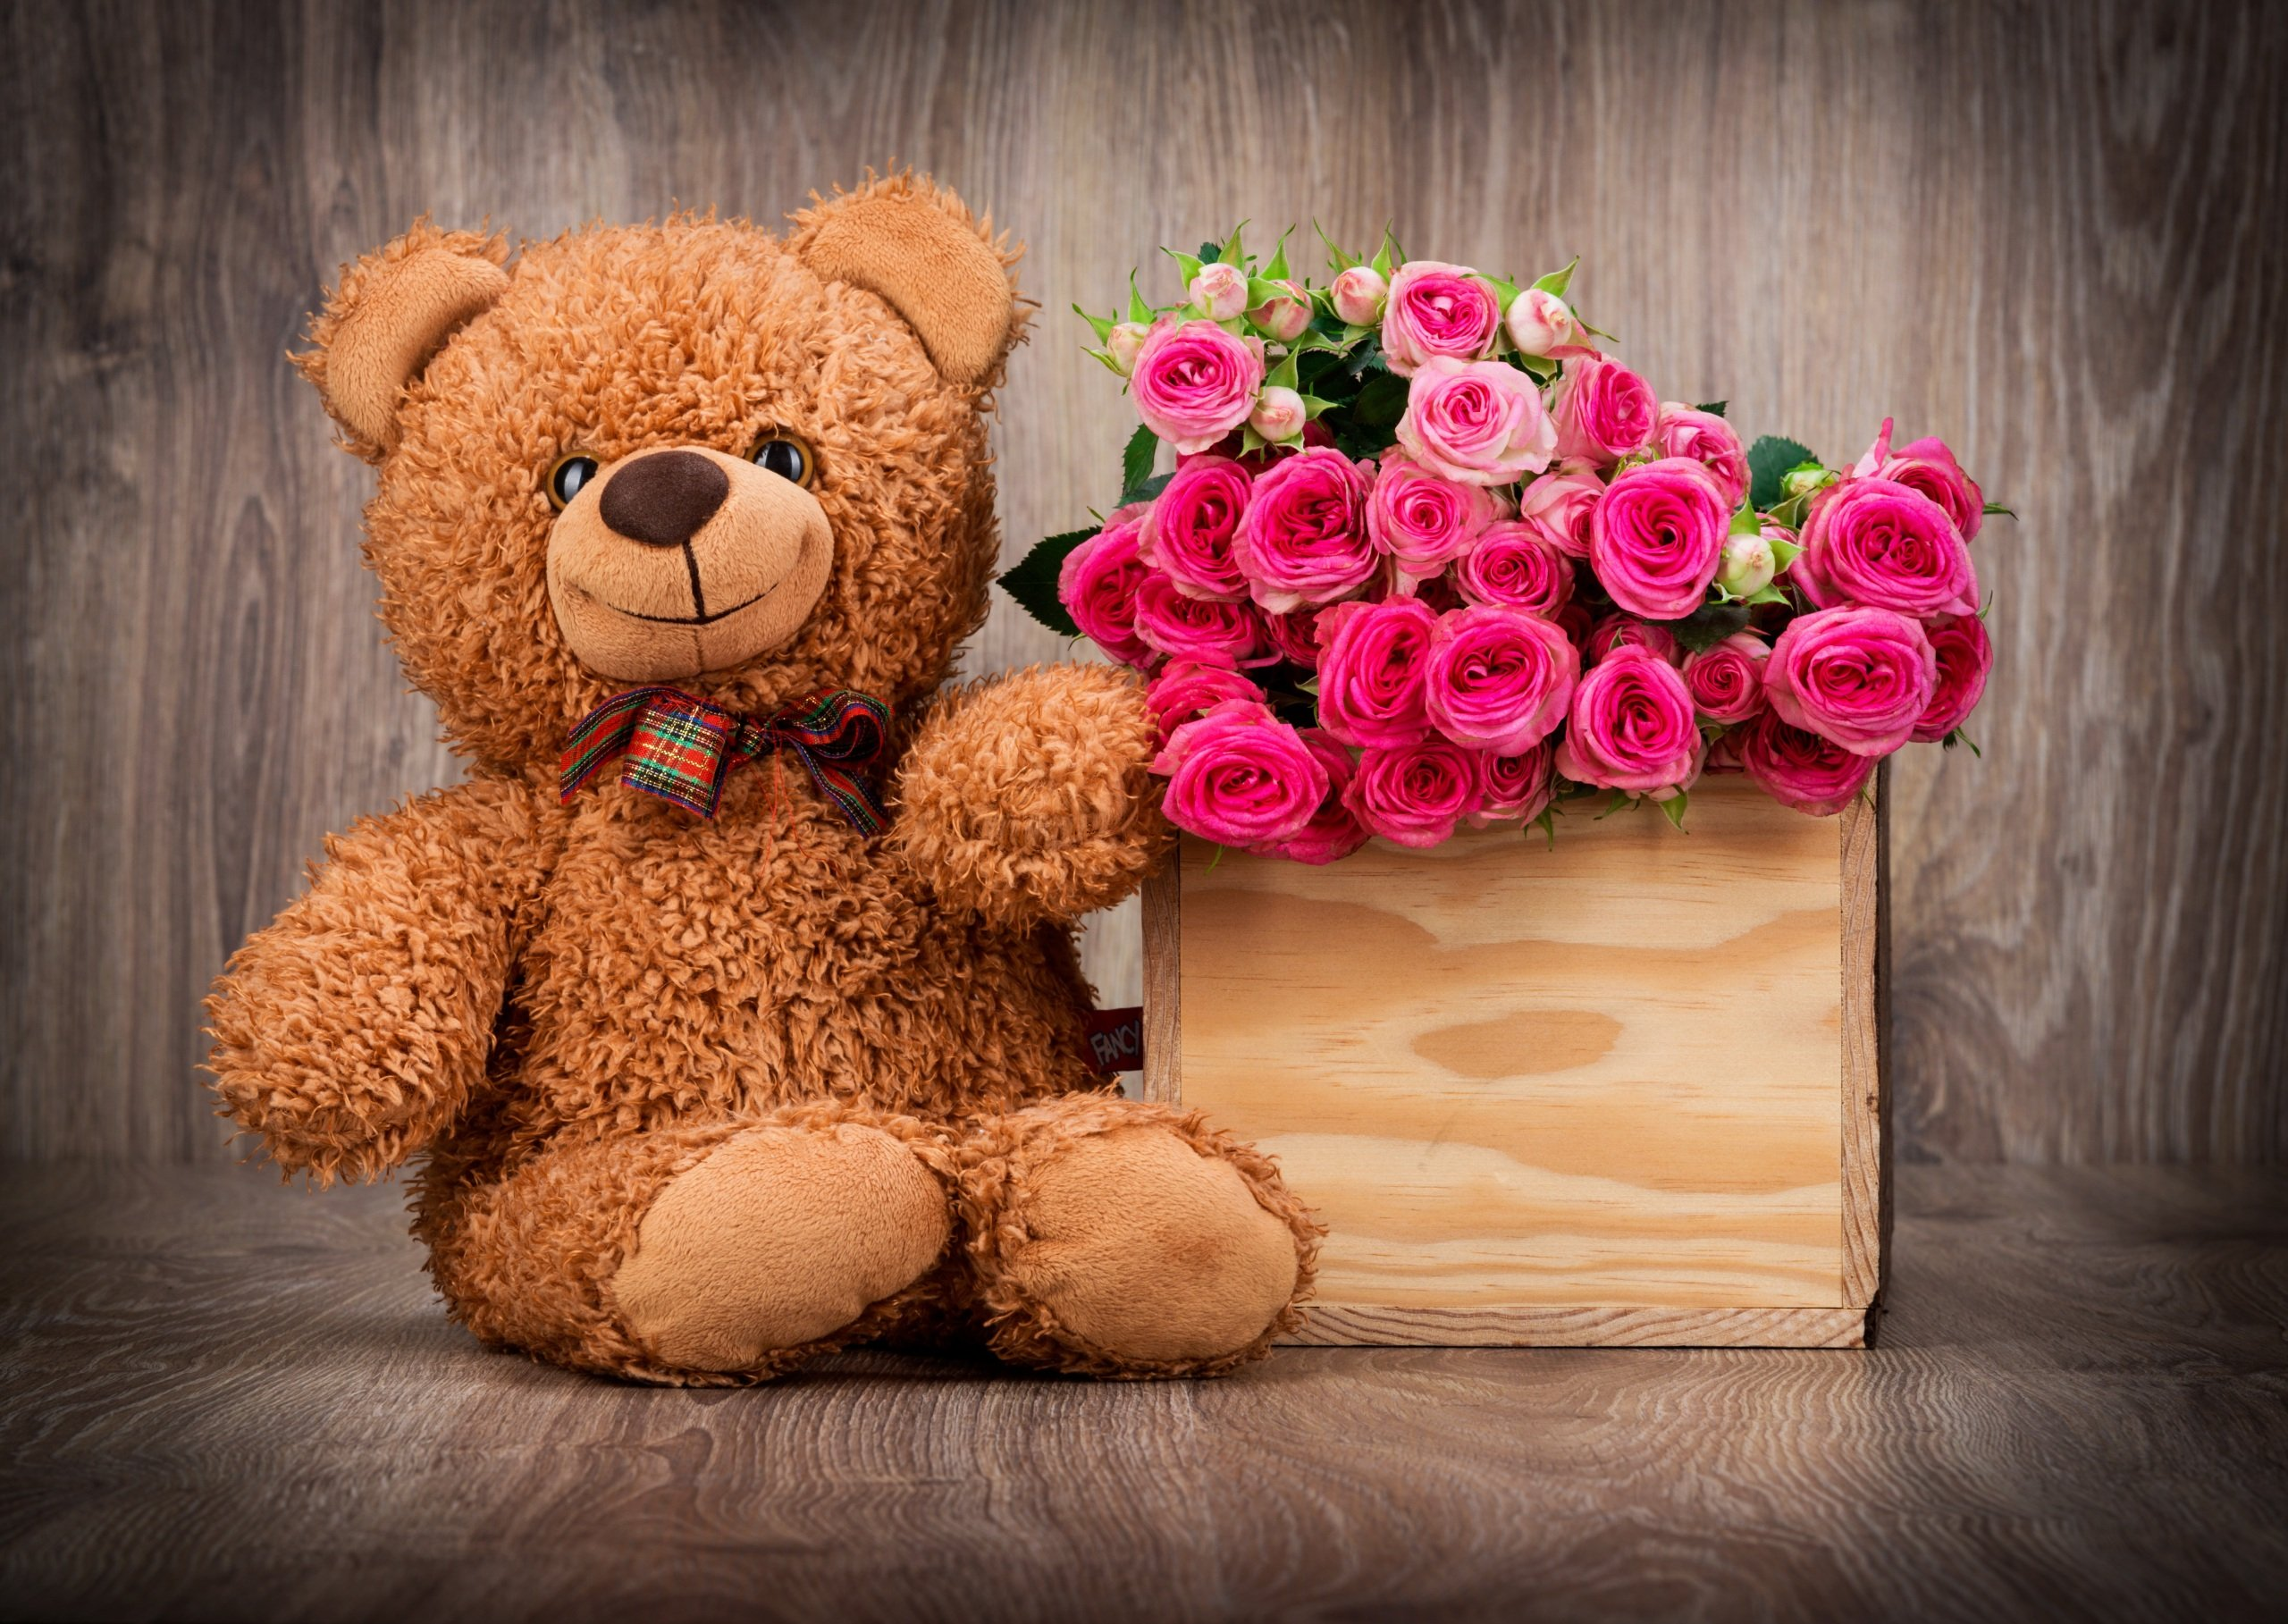 Love Teddy Bear Hd Wallpaper : cute Teddy Bears Wallpapers - WallpaperSafari